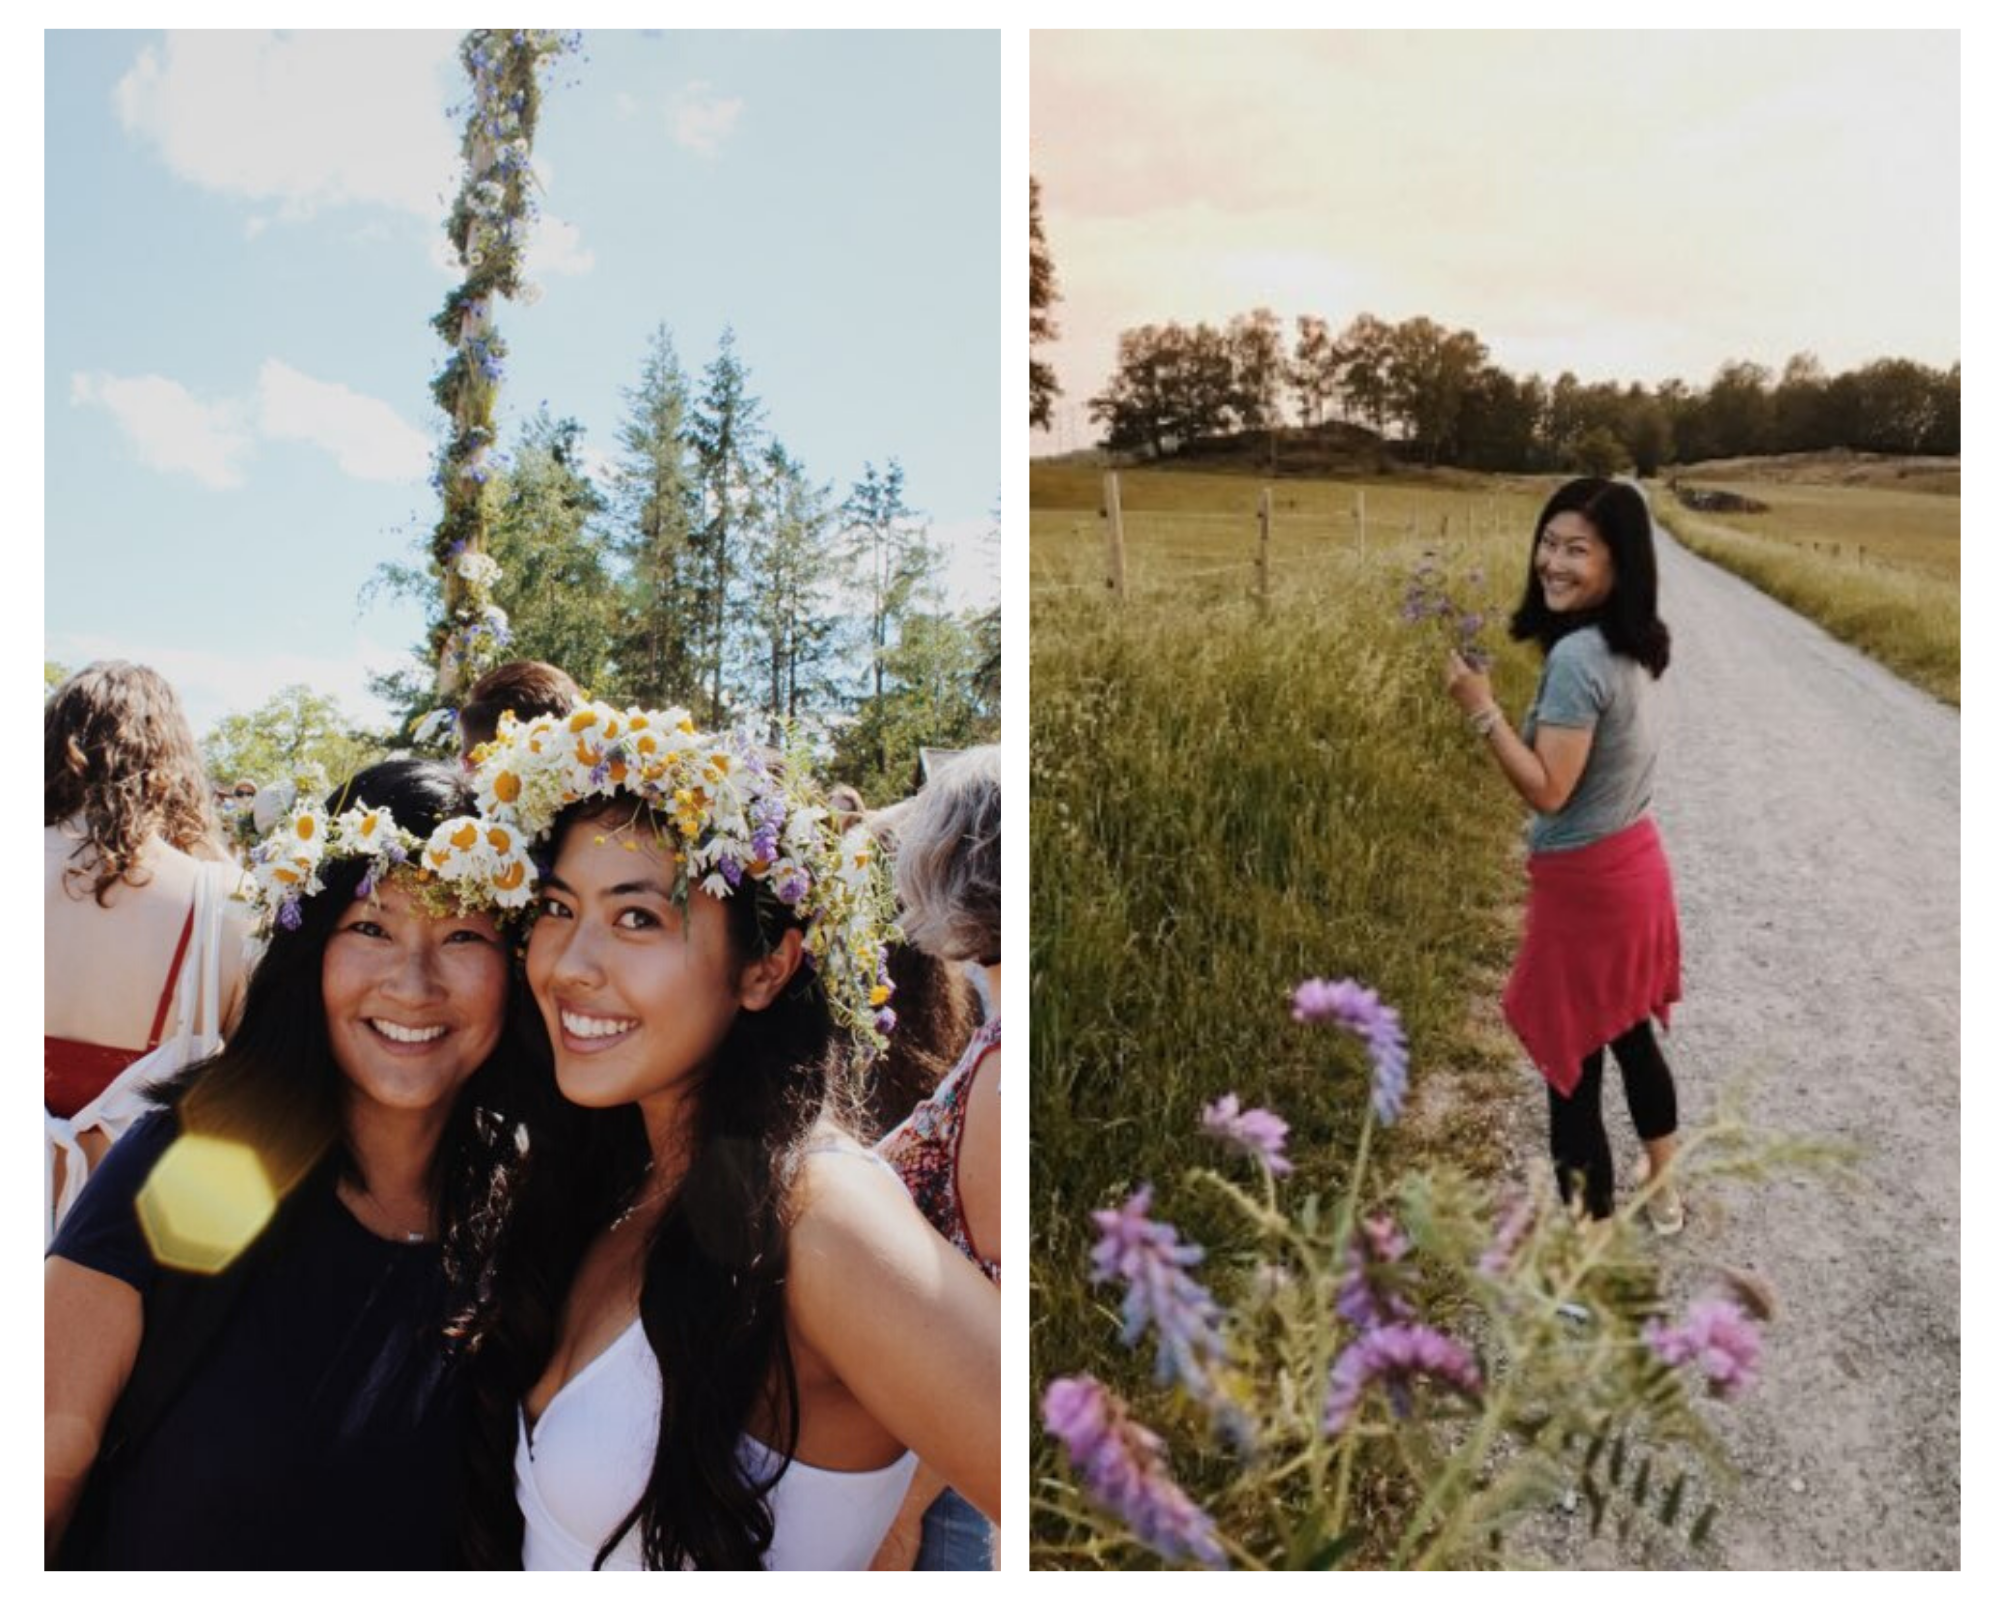 Anna and her mom on a hike, wearing flower crowns